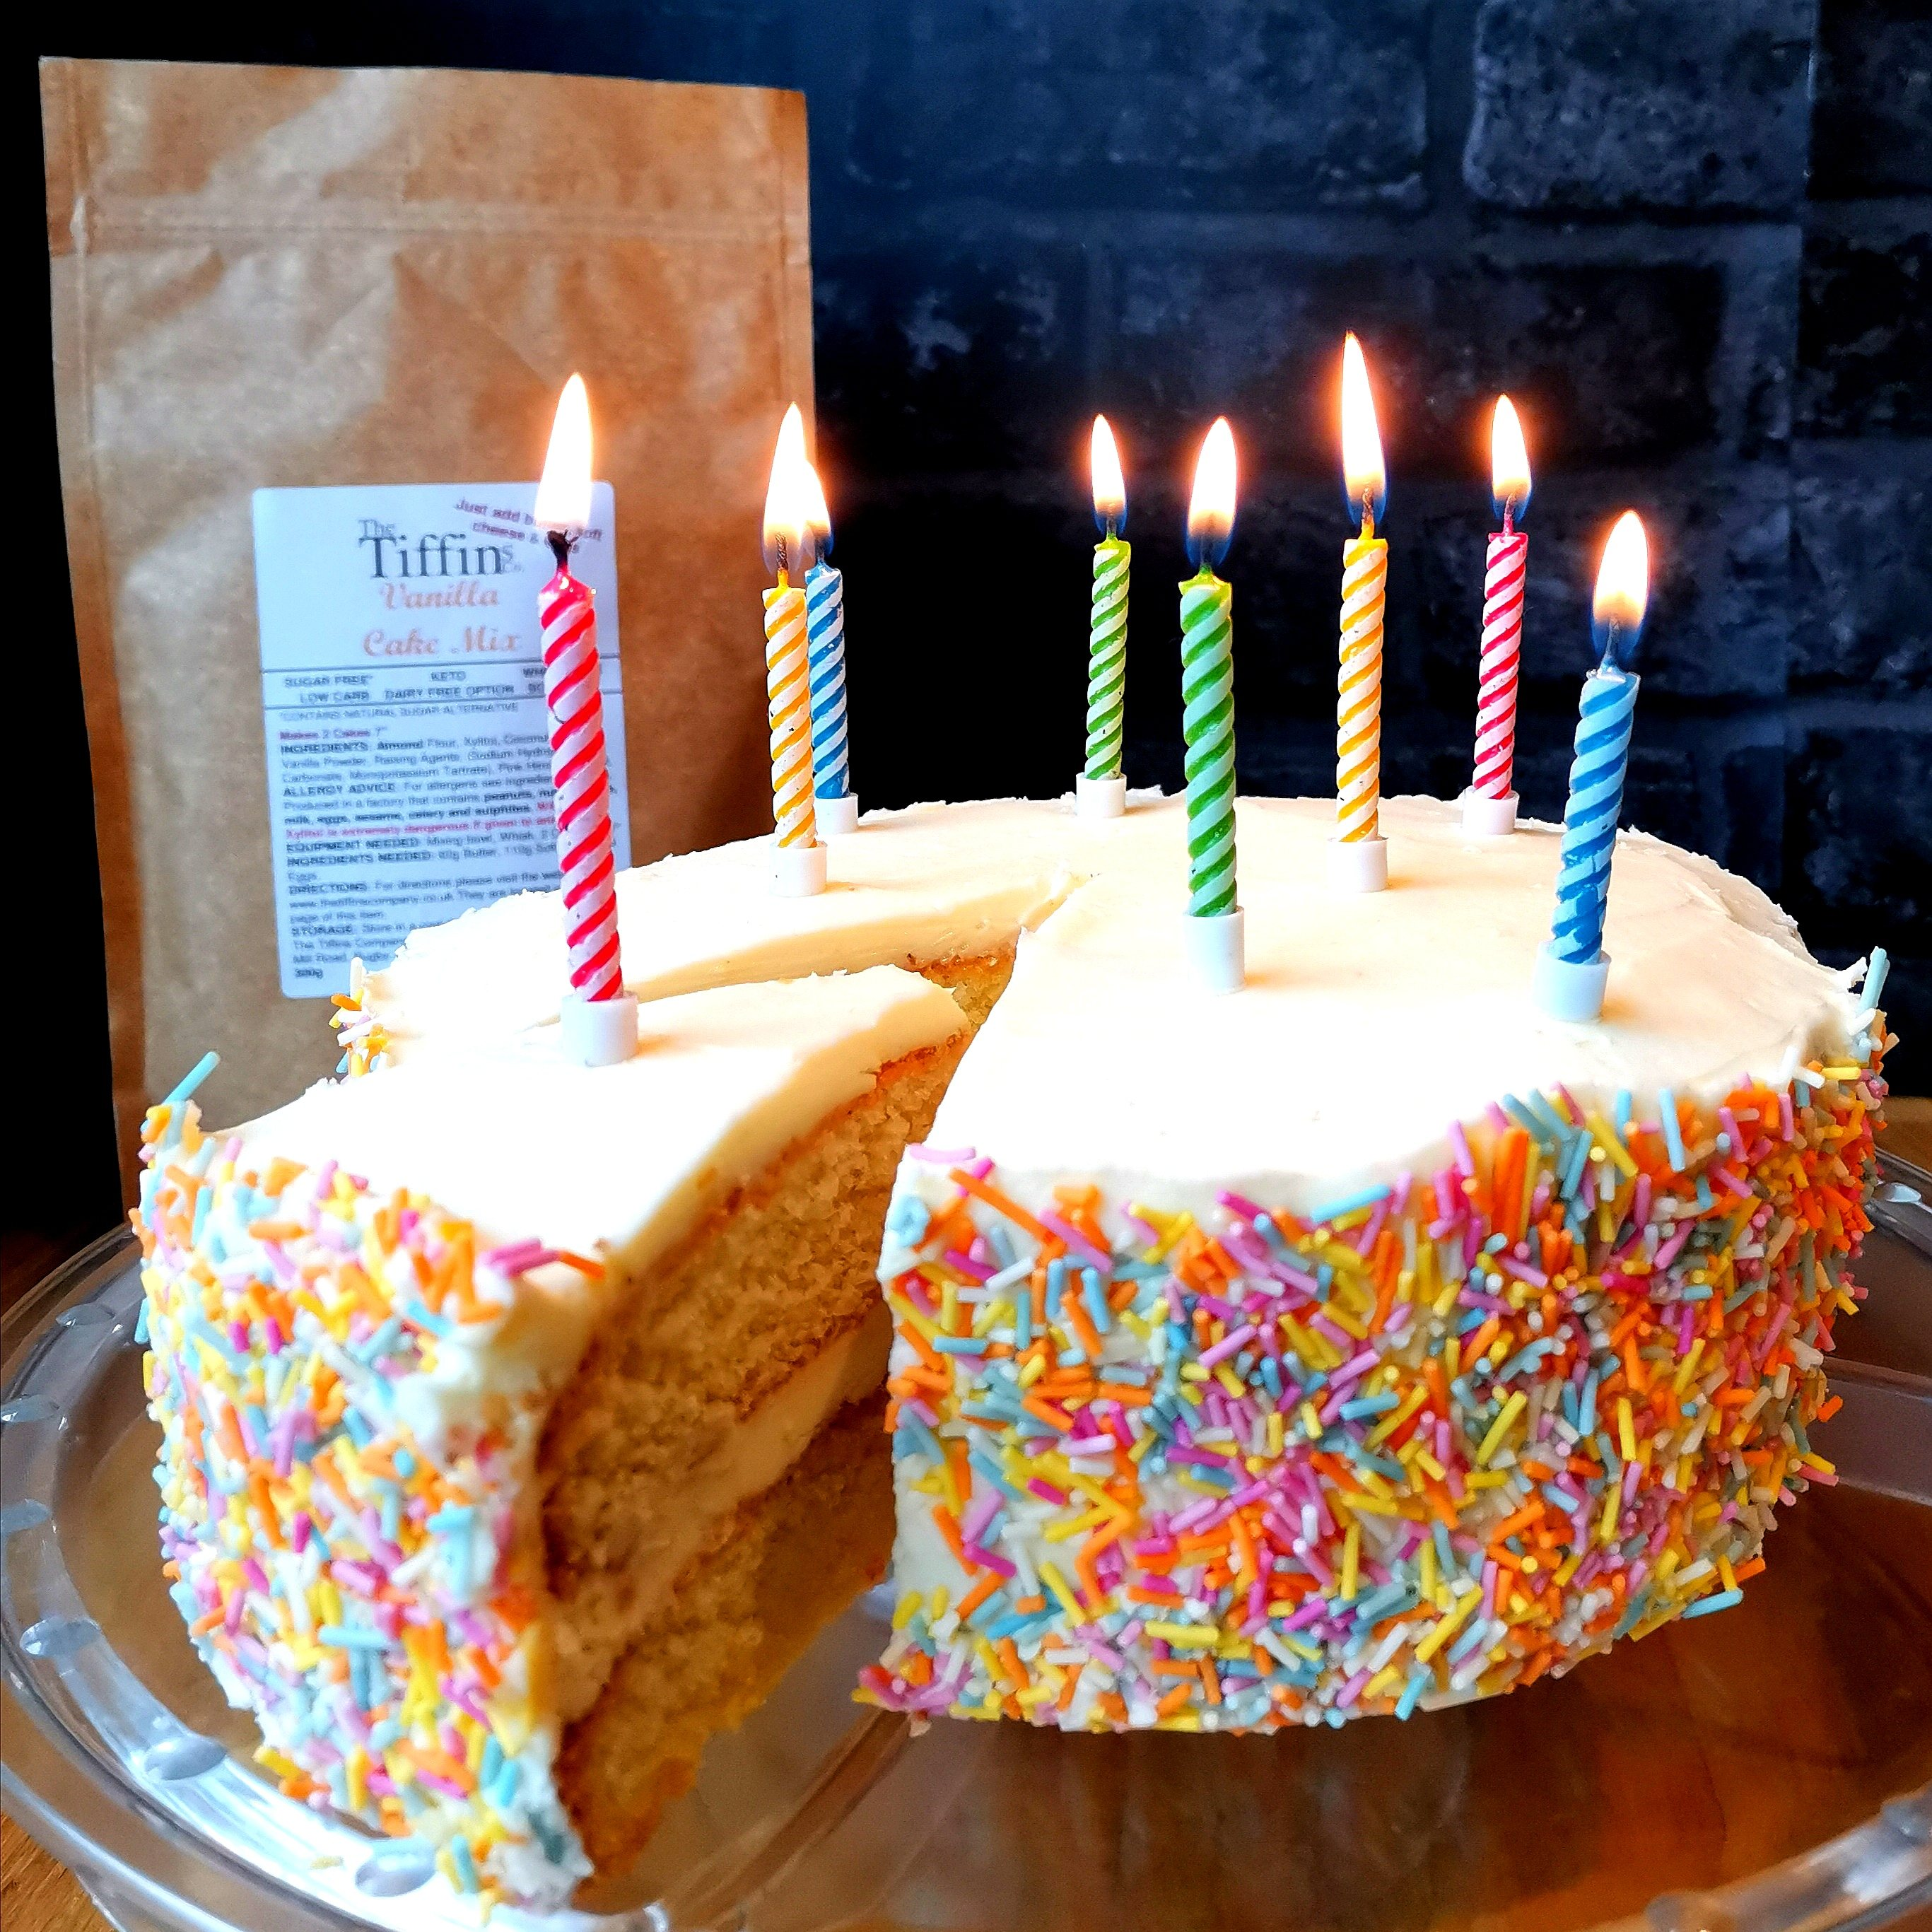 Sensational Vanilla Birthday Cake Mix Keto Low Carb Sugar Free Yumbles Funny Birthday Cards Online Alyptdamsfinfo